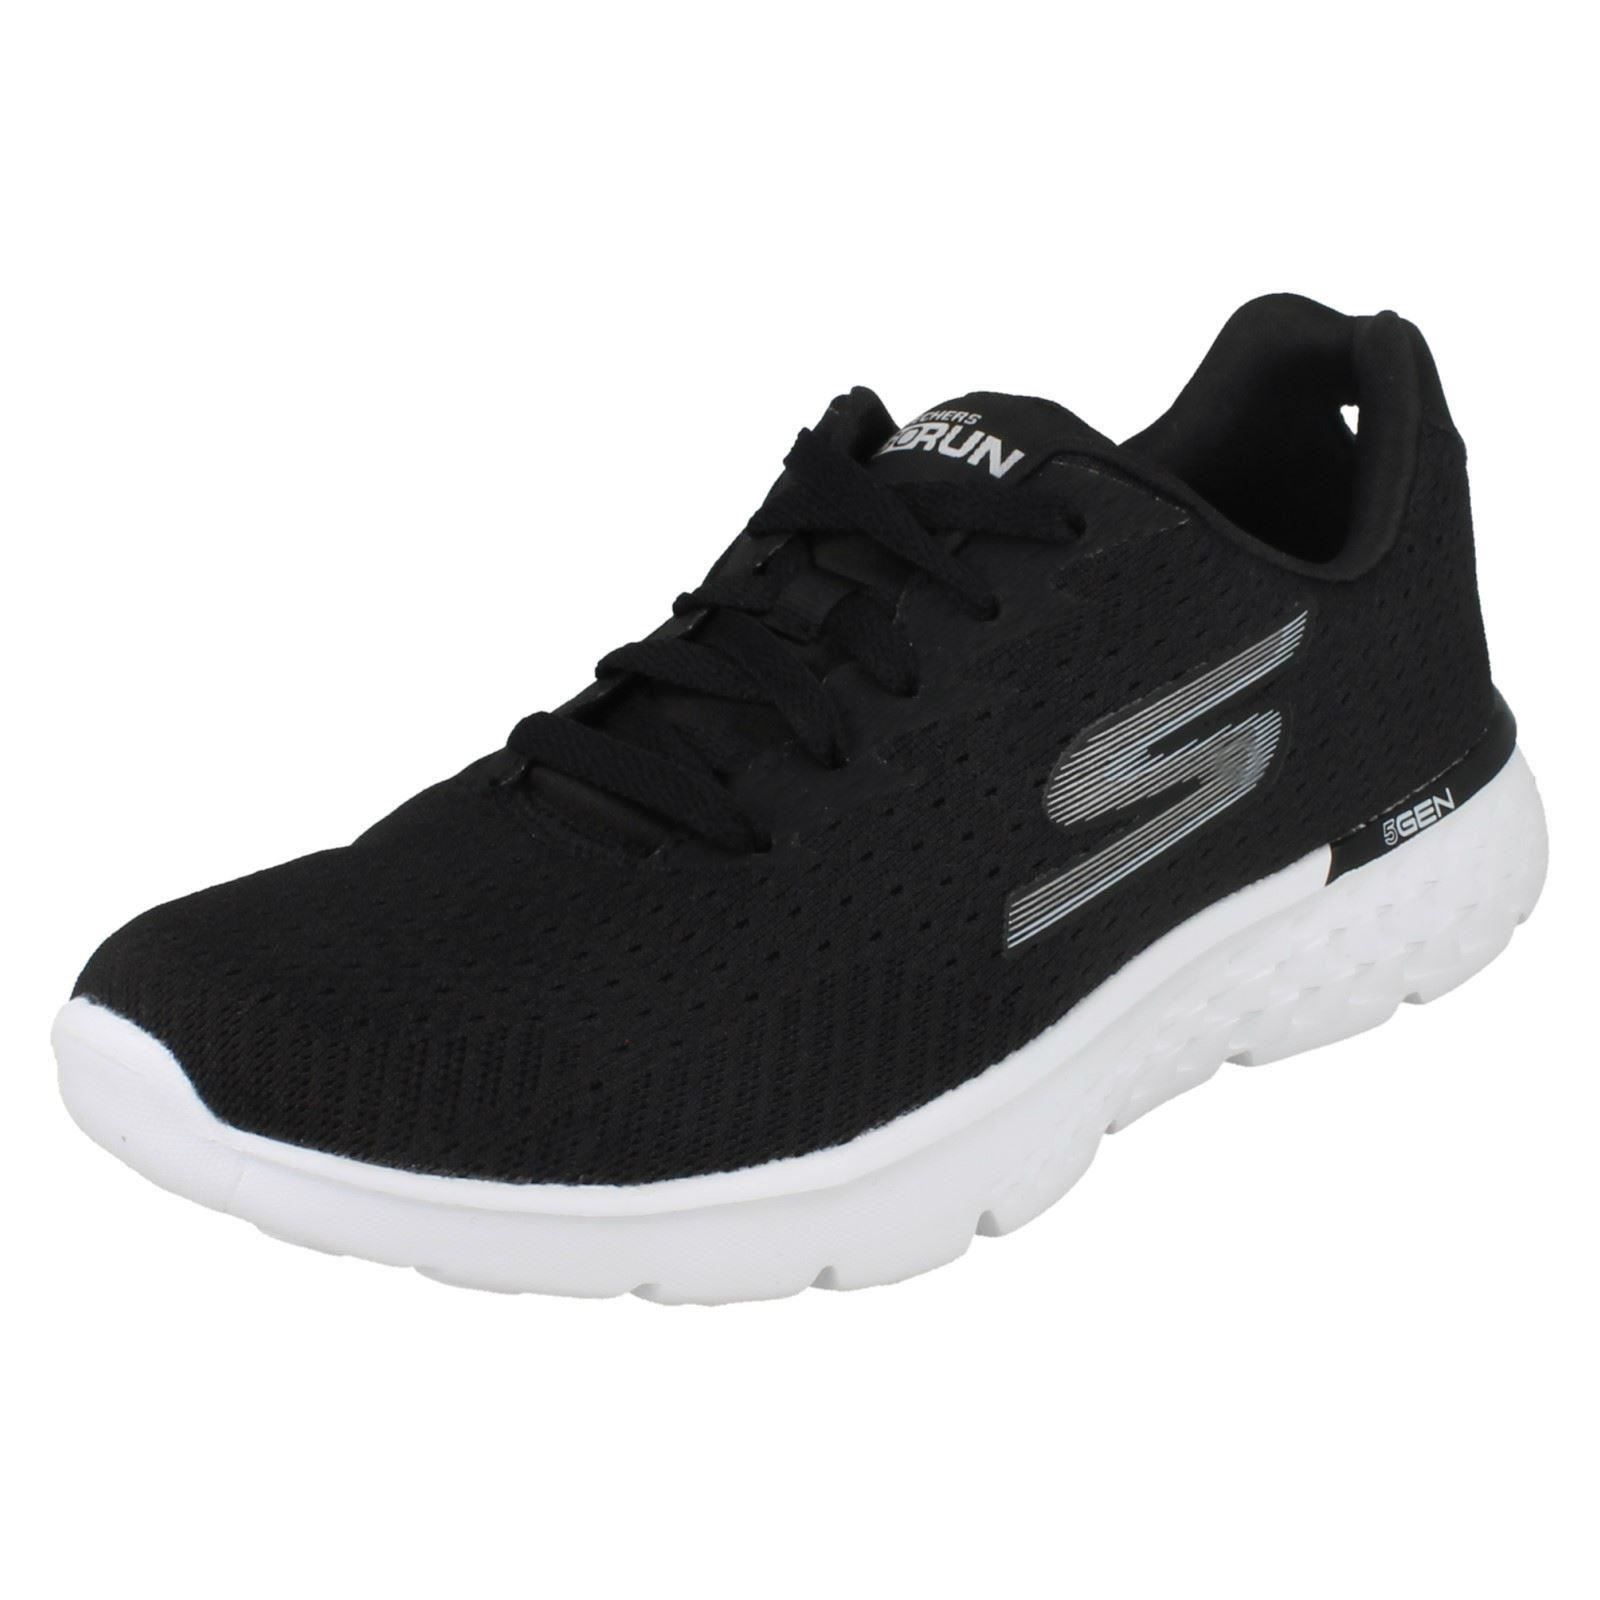 Details about Ladies Skechers Sports Trainers 'Go Run' 400 Sole 14804